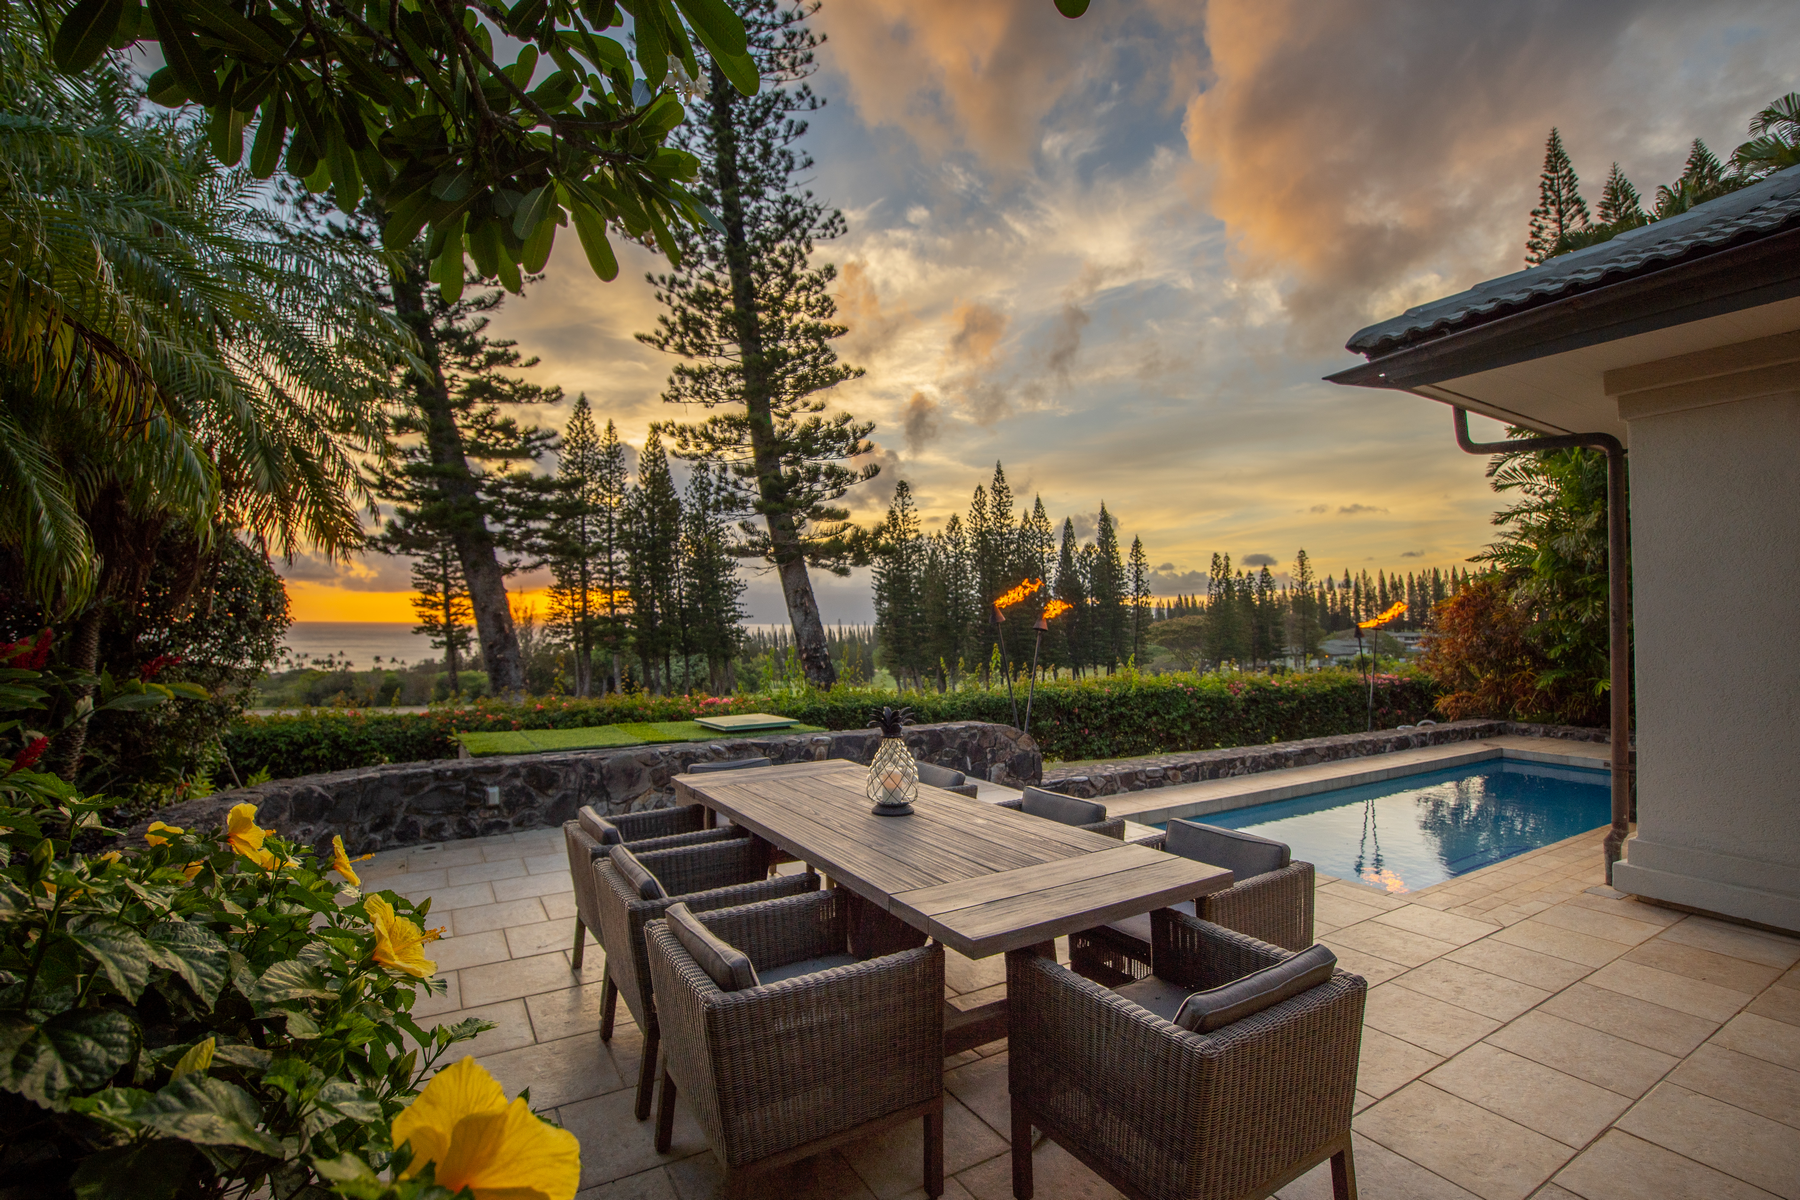 708 Fairway Drive: Modern Hawaiian Interior Design Meets Kapalua's Pineapple Hill